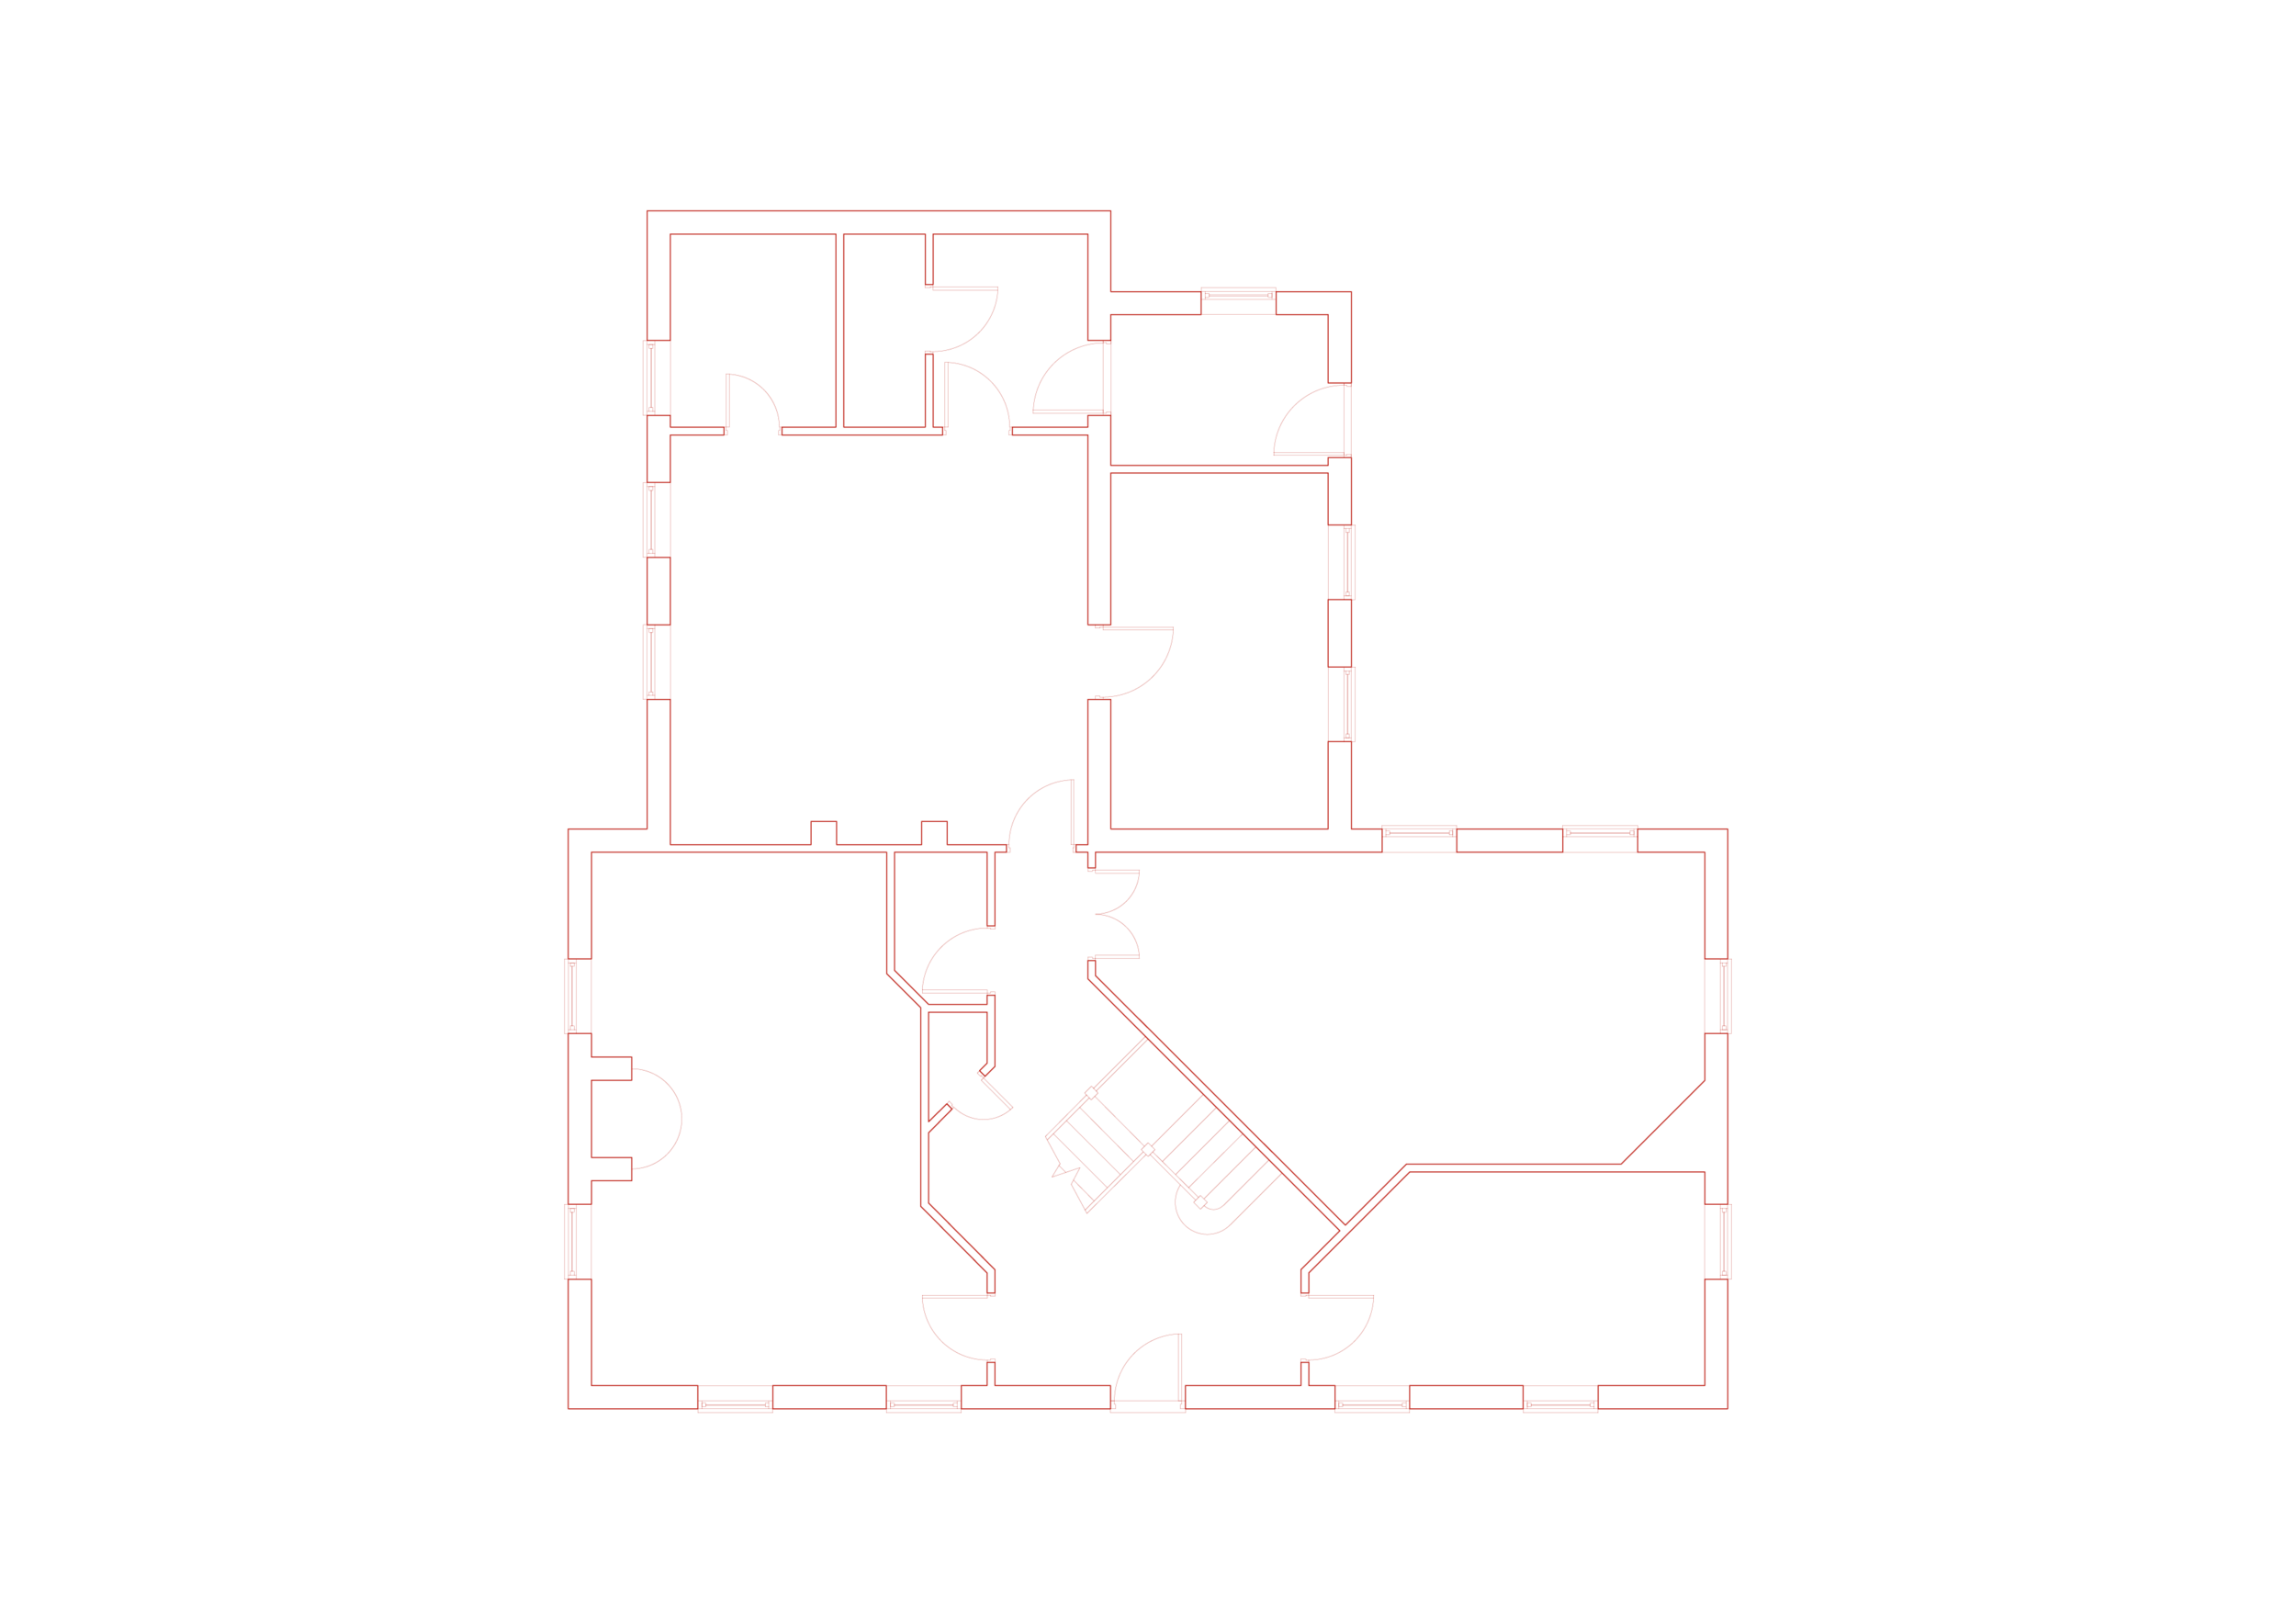 Rascal Wood Plan 1 - East Yorkshire Architects - Samuel Kendall Associates.png